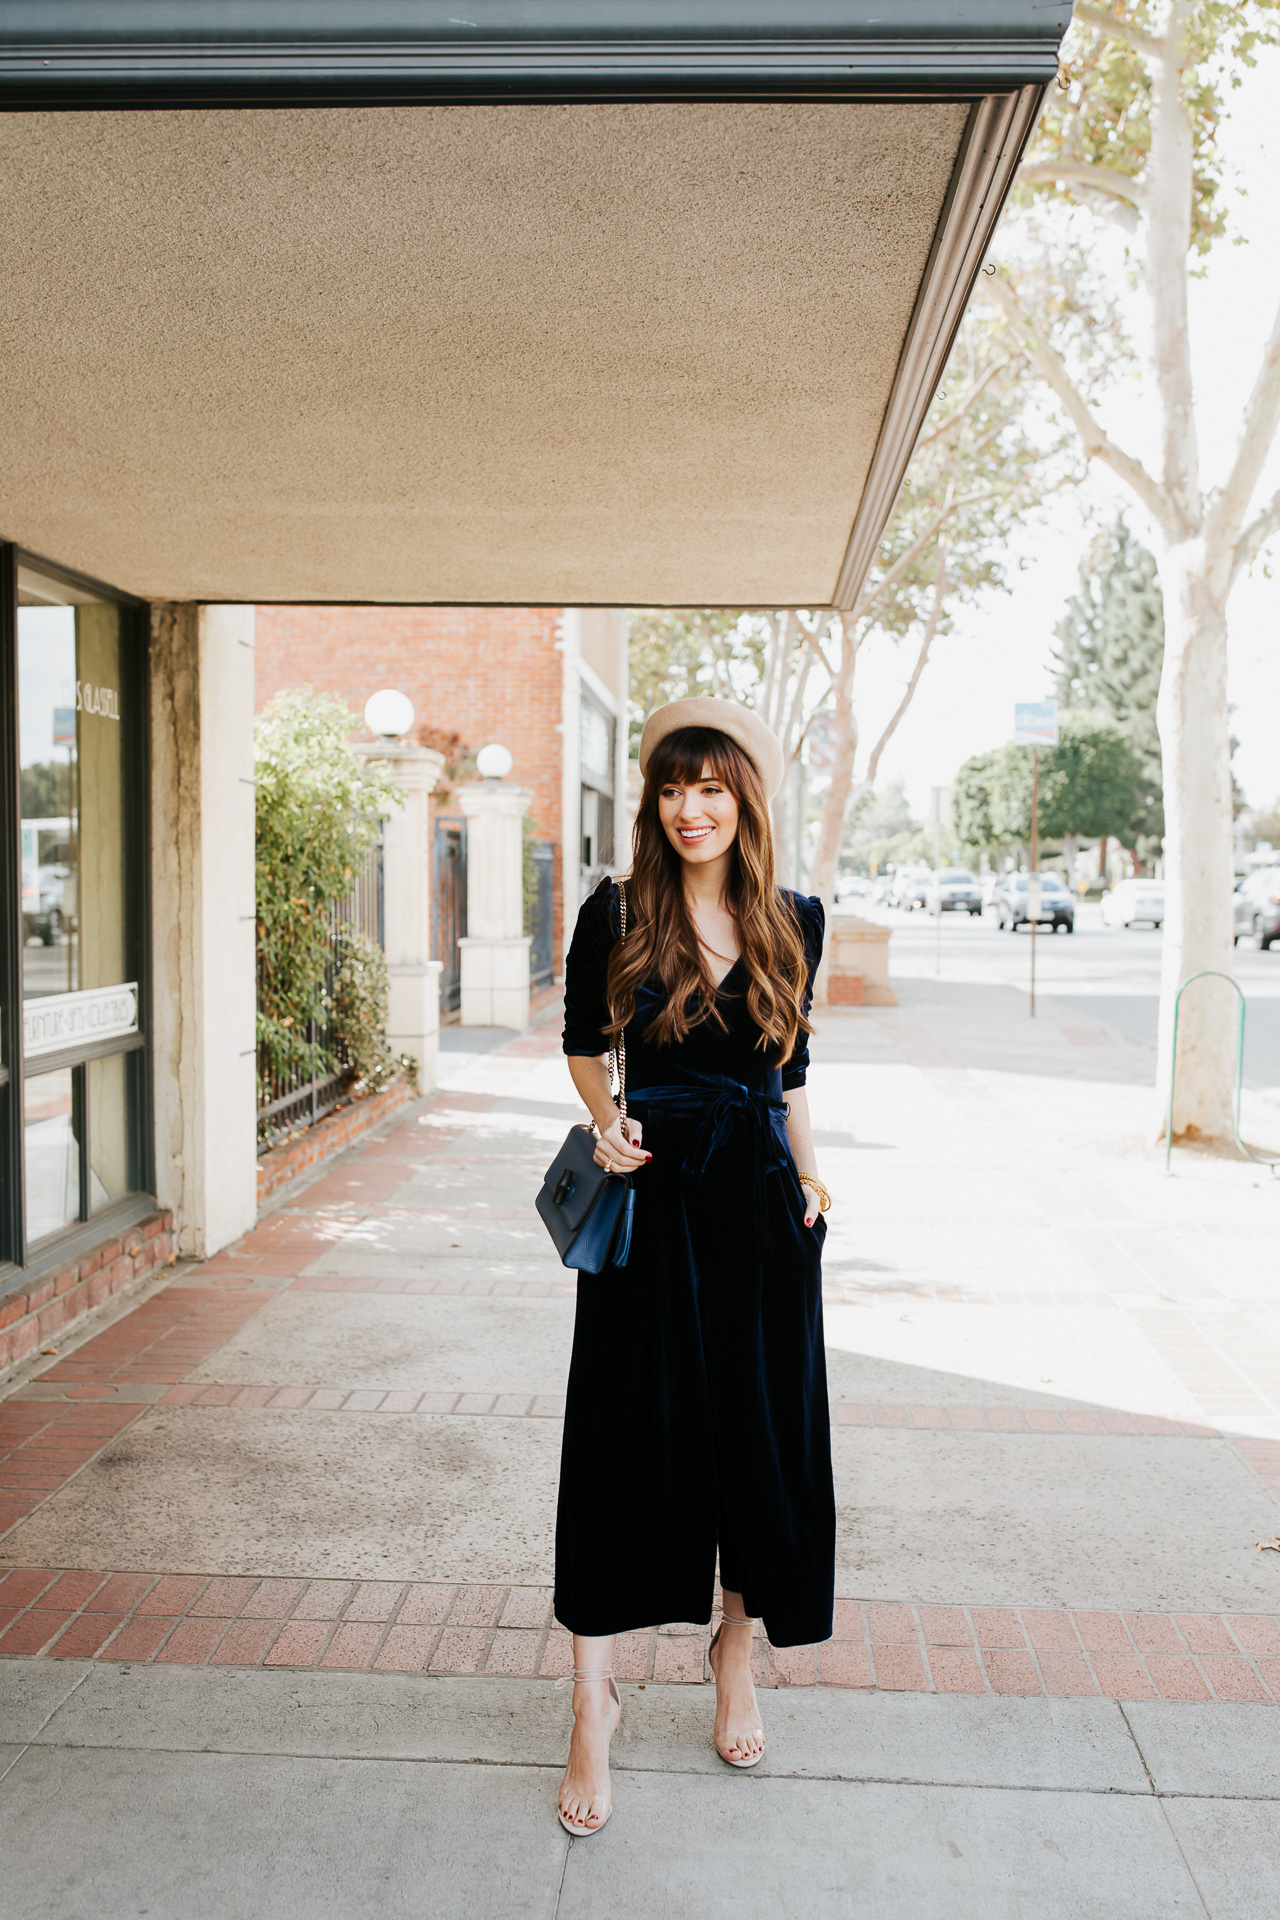 Who can resist a navy blue velvet outfit?! - M Loves M @marmar